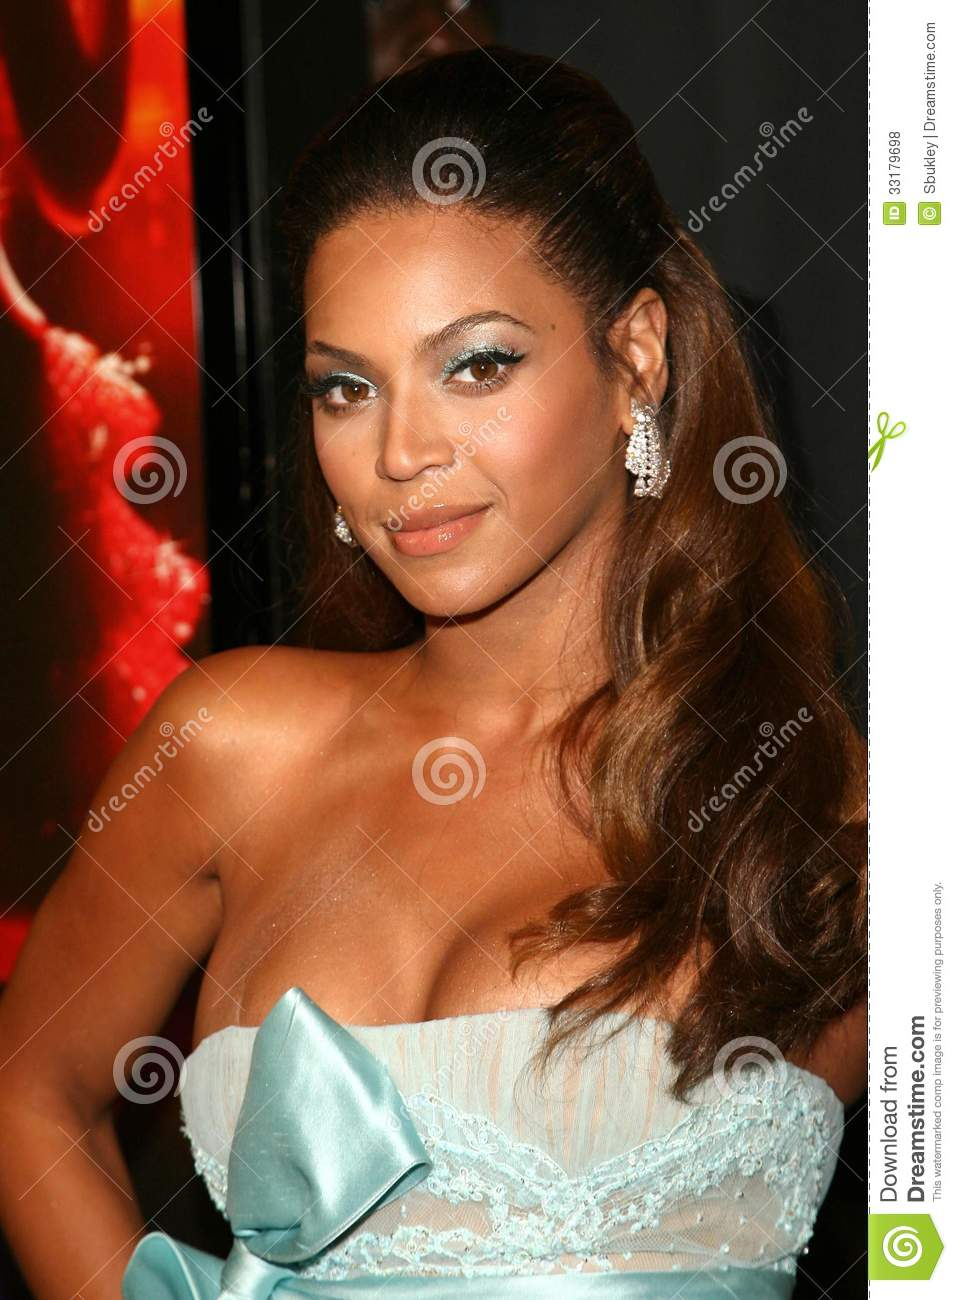 beyonce picture Adult knowles